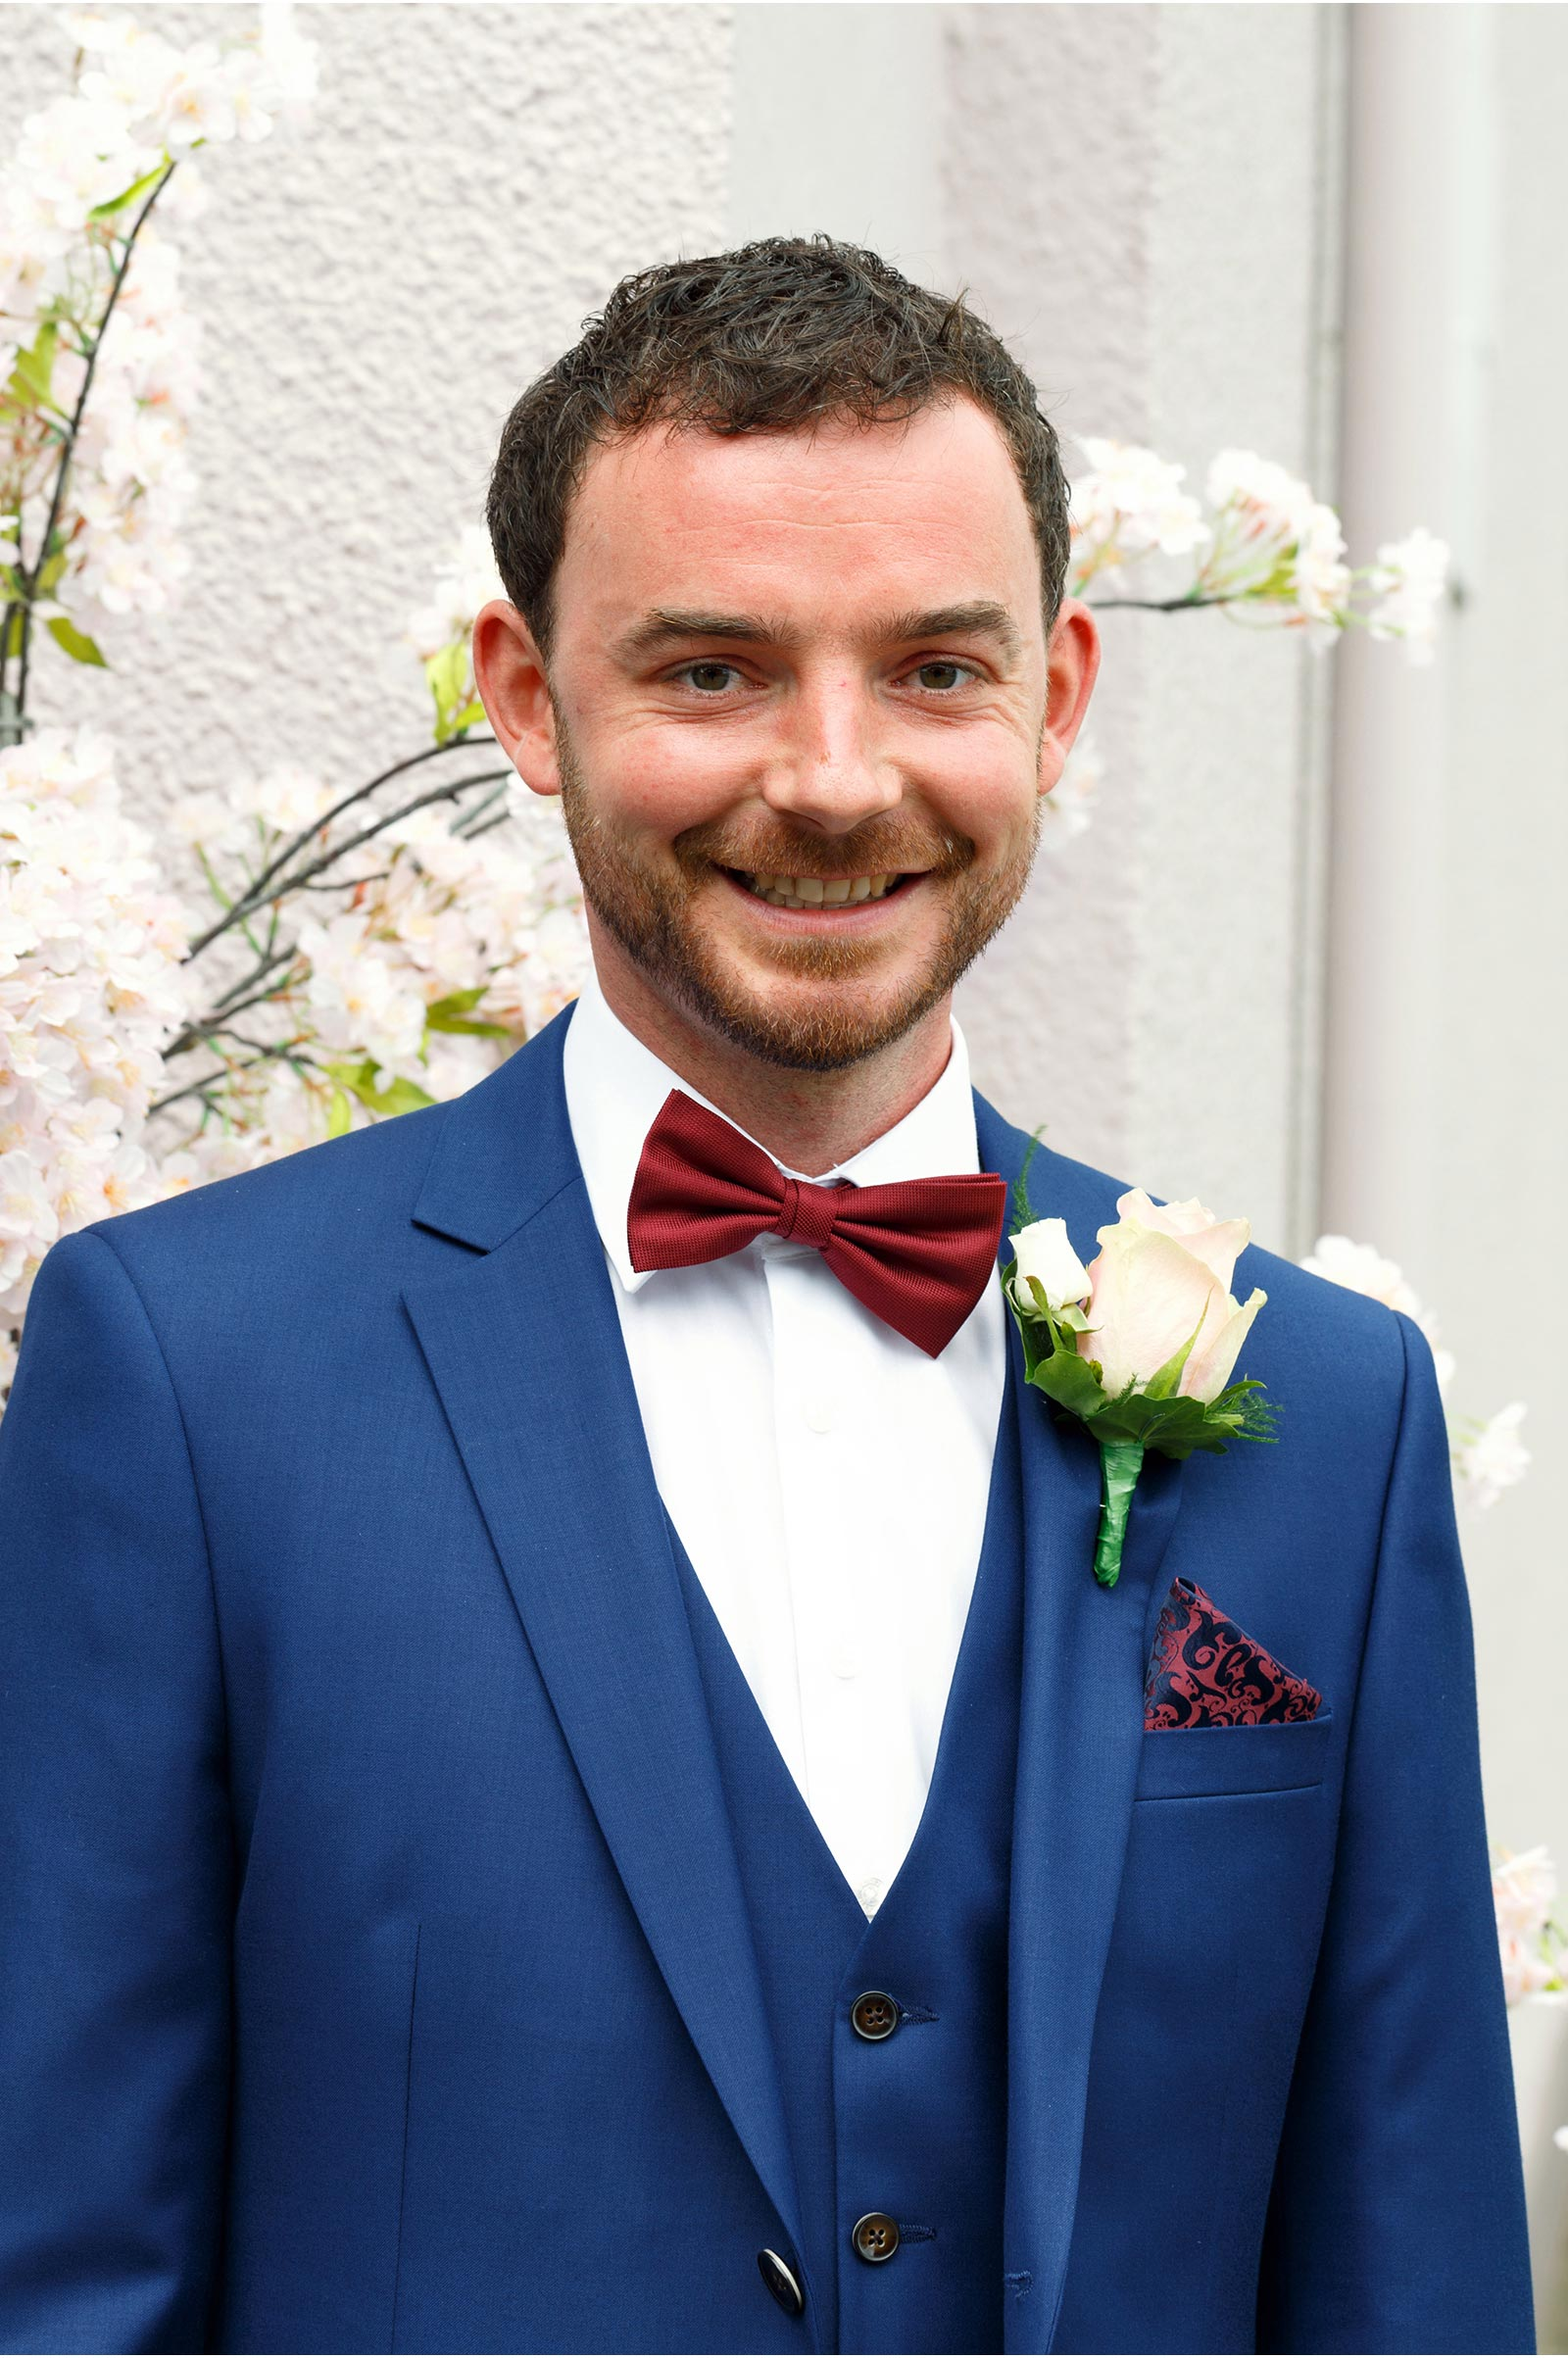 groom in navy blue suit with wine bowtie